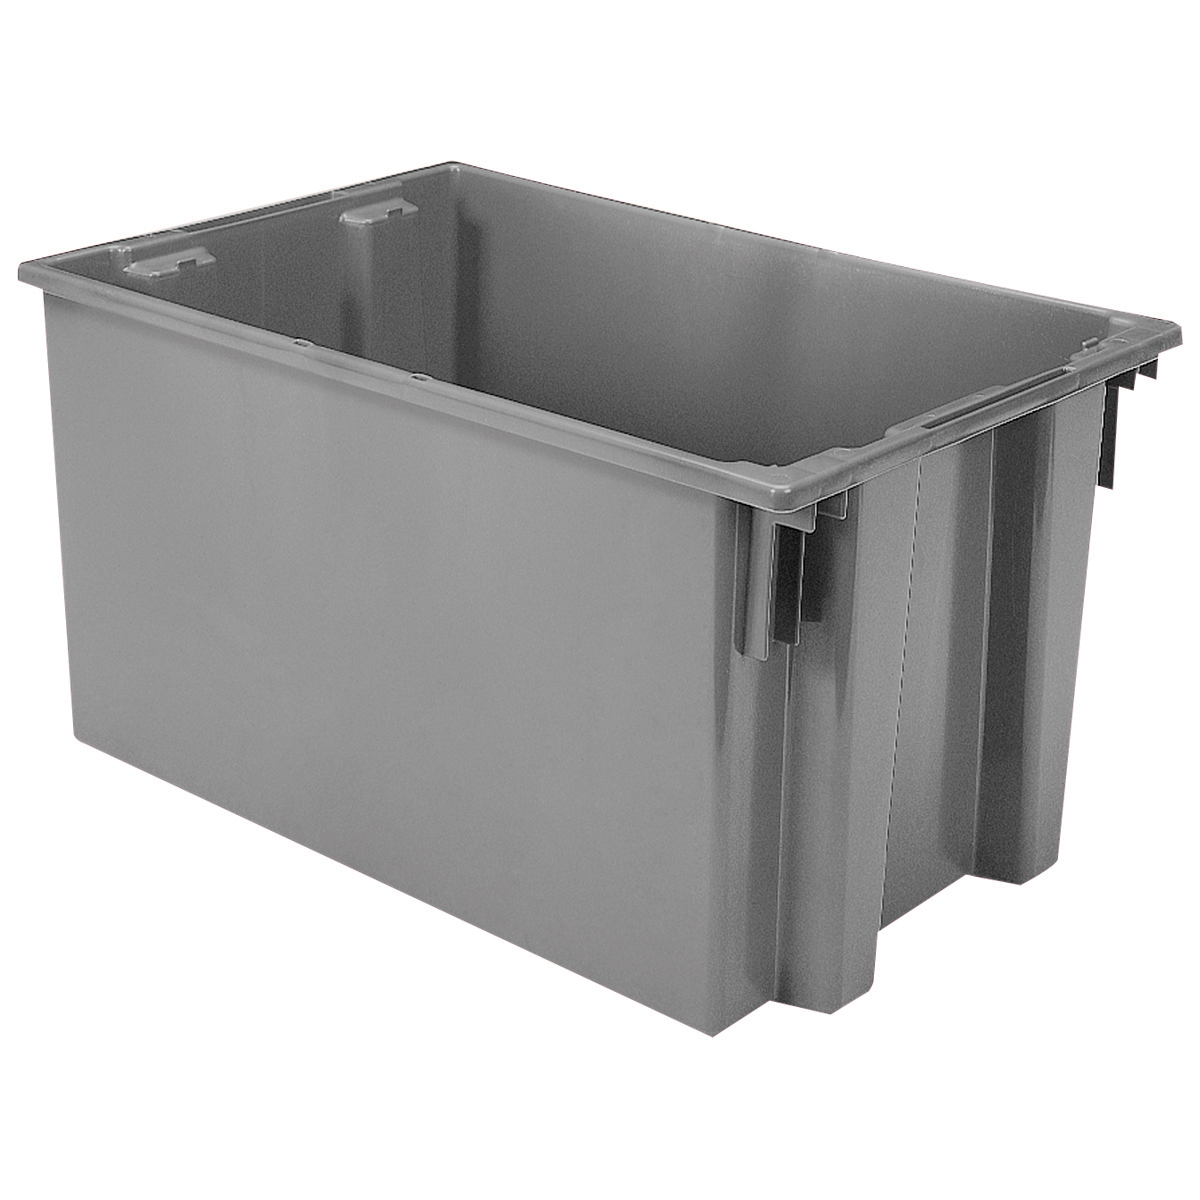 Nest & Stack Tote 29-1/2 x 19-1/2 x 15, Gray (35300GREY).  This item sold in carton quantities of 3.